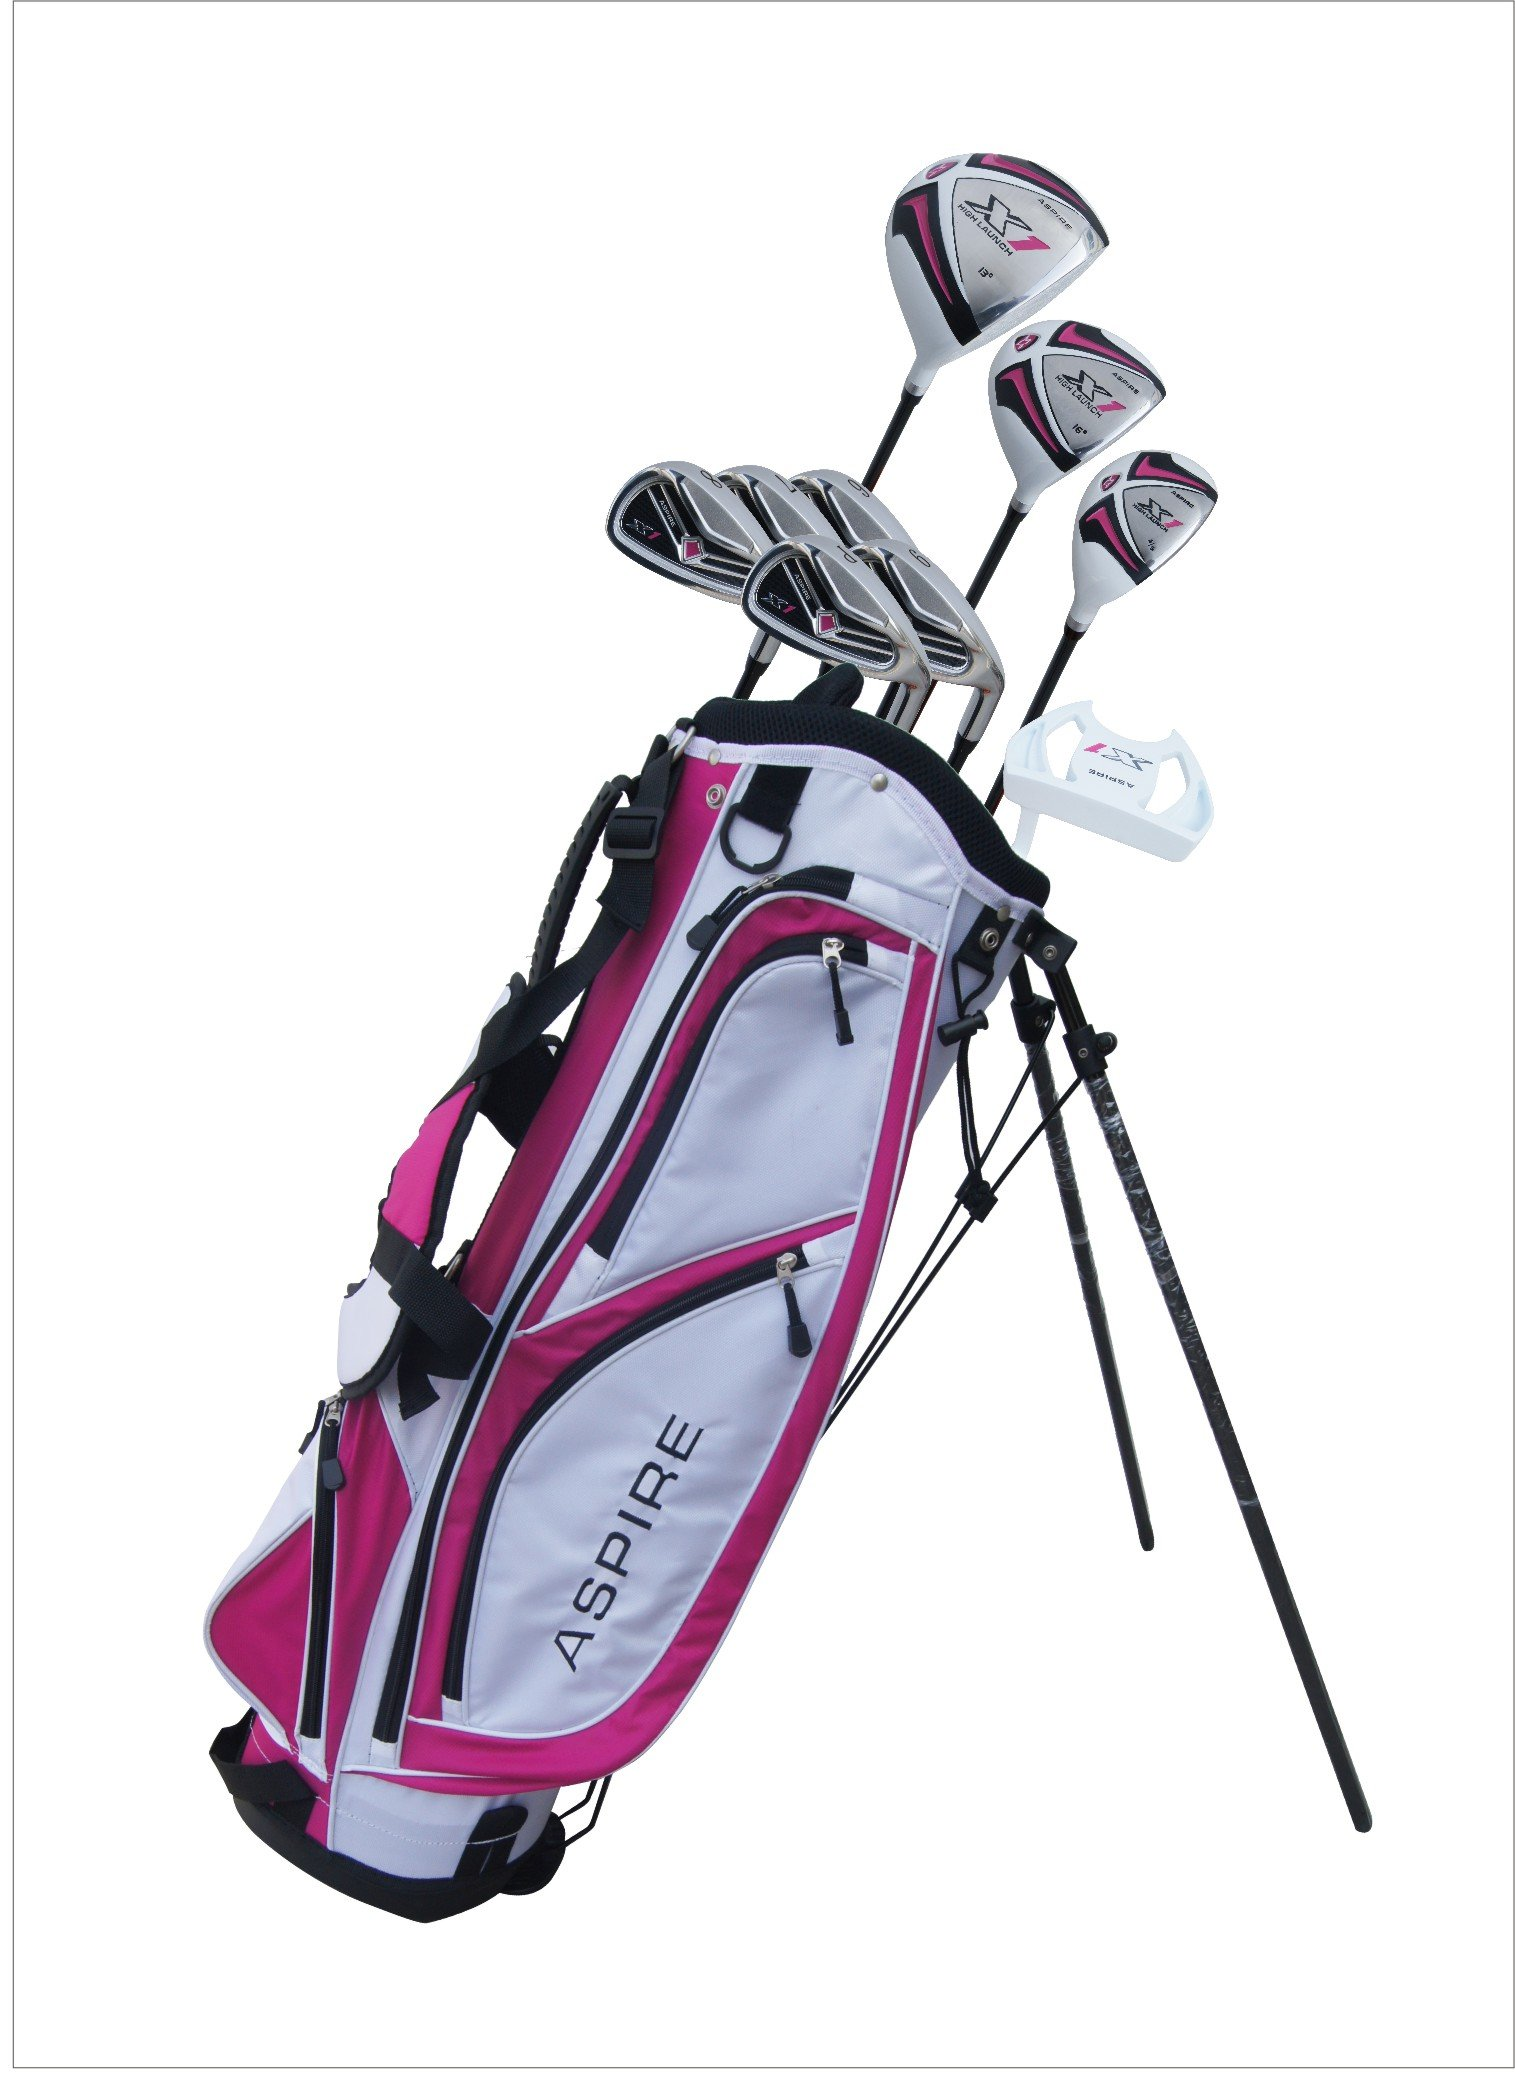 Aspire X1 Ladies Womens Complete Right Handed Golf Clubs Set Includes Driver, Fairway, Hybrid, 6-PW Irons, Putter, Stand Bag, 3 H/C's Cherry Pink Petite Size for Ladies 5'3'' and Below! by Aspire (Image #2)